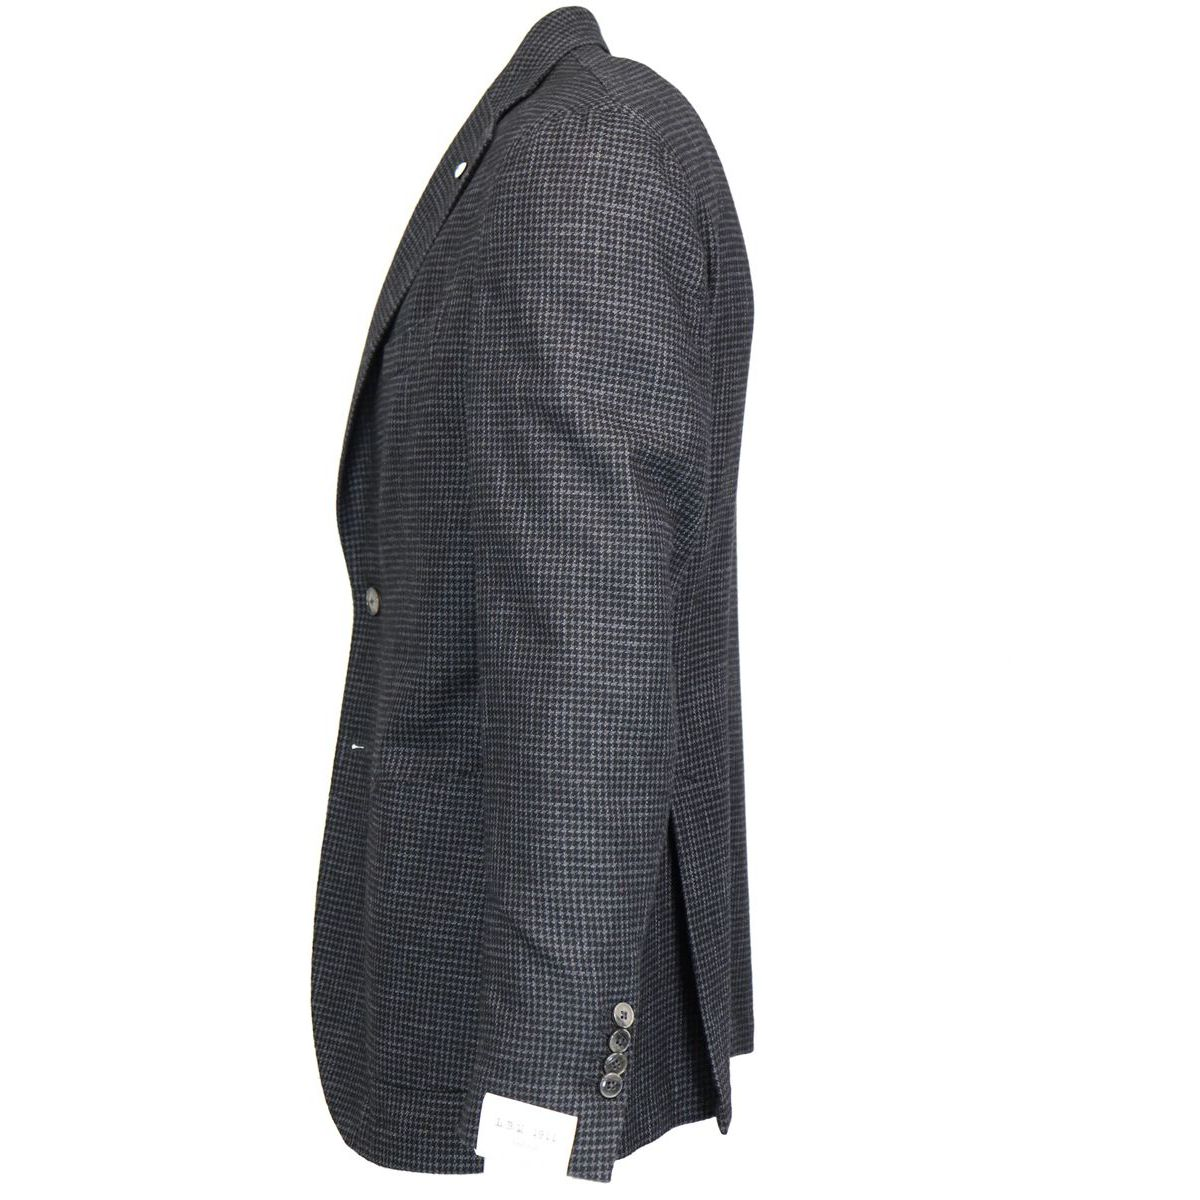 Short wool / houndstooth mixed jacket Anthracite L.B.M. 1911